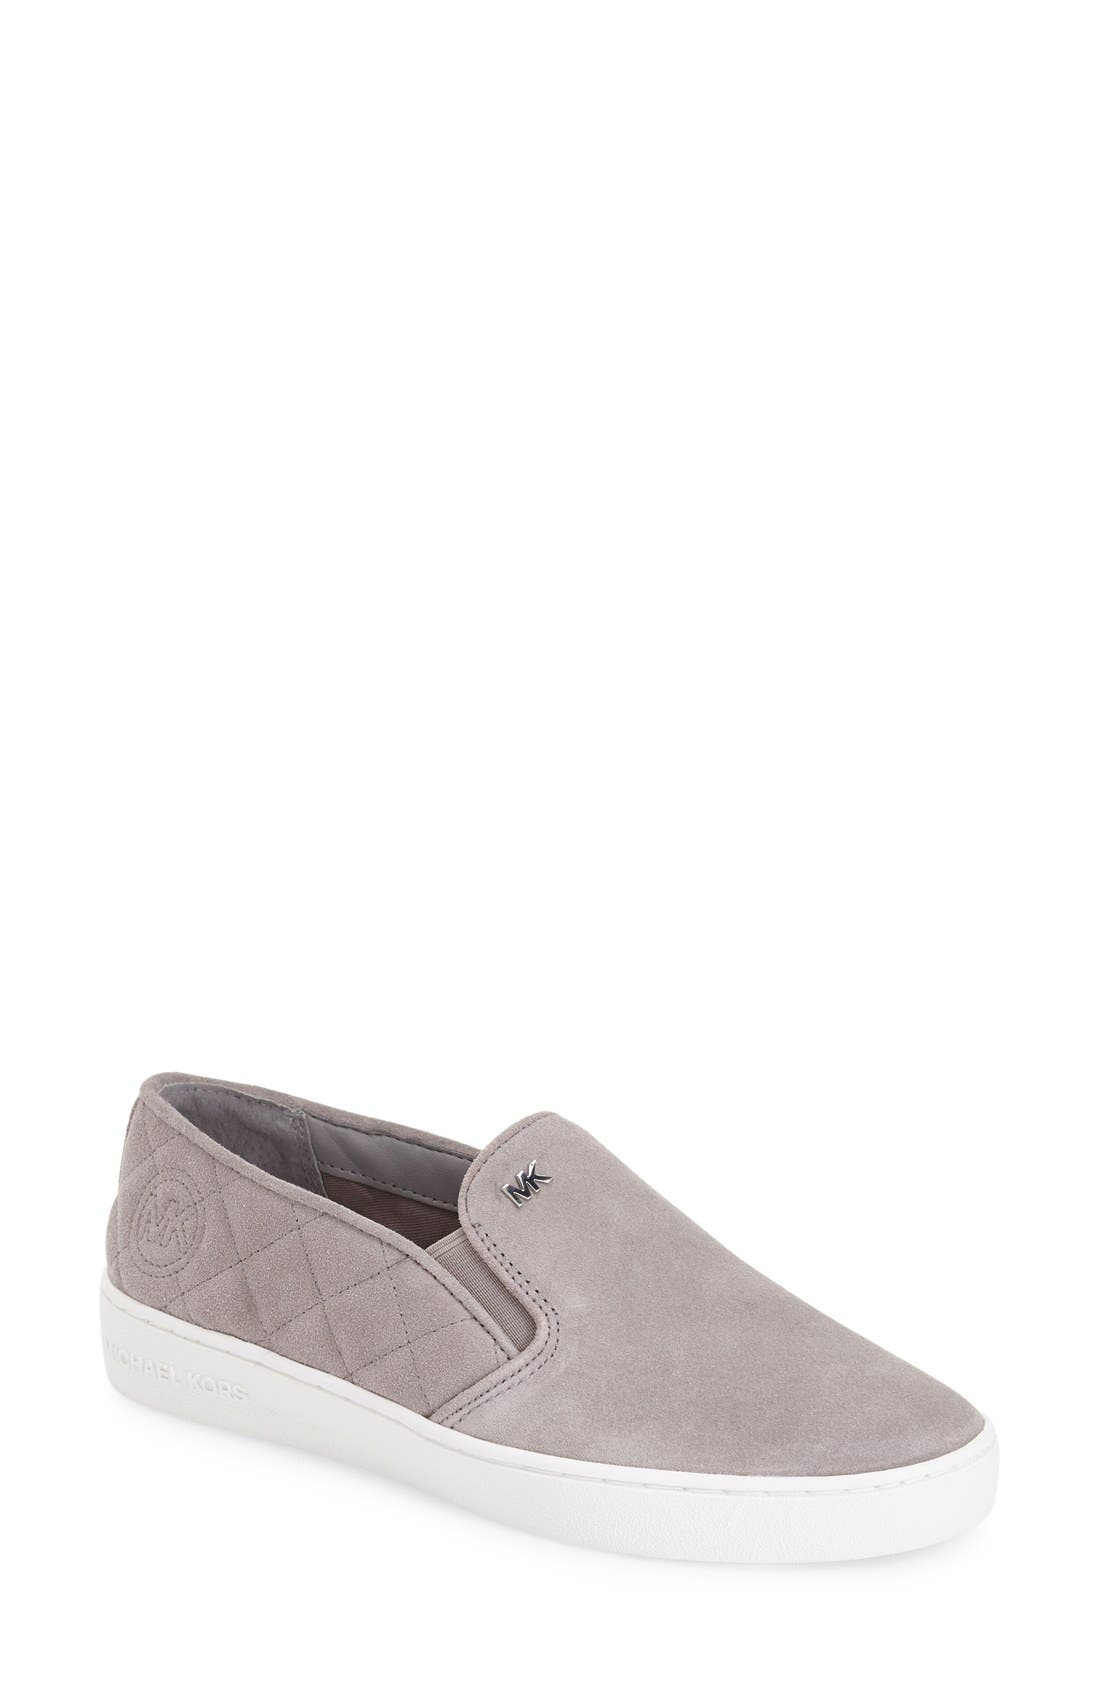 Alternate Image 1 Selected - MICHAEL Michael Kors Keaton Slip-On Sneaker (Women)